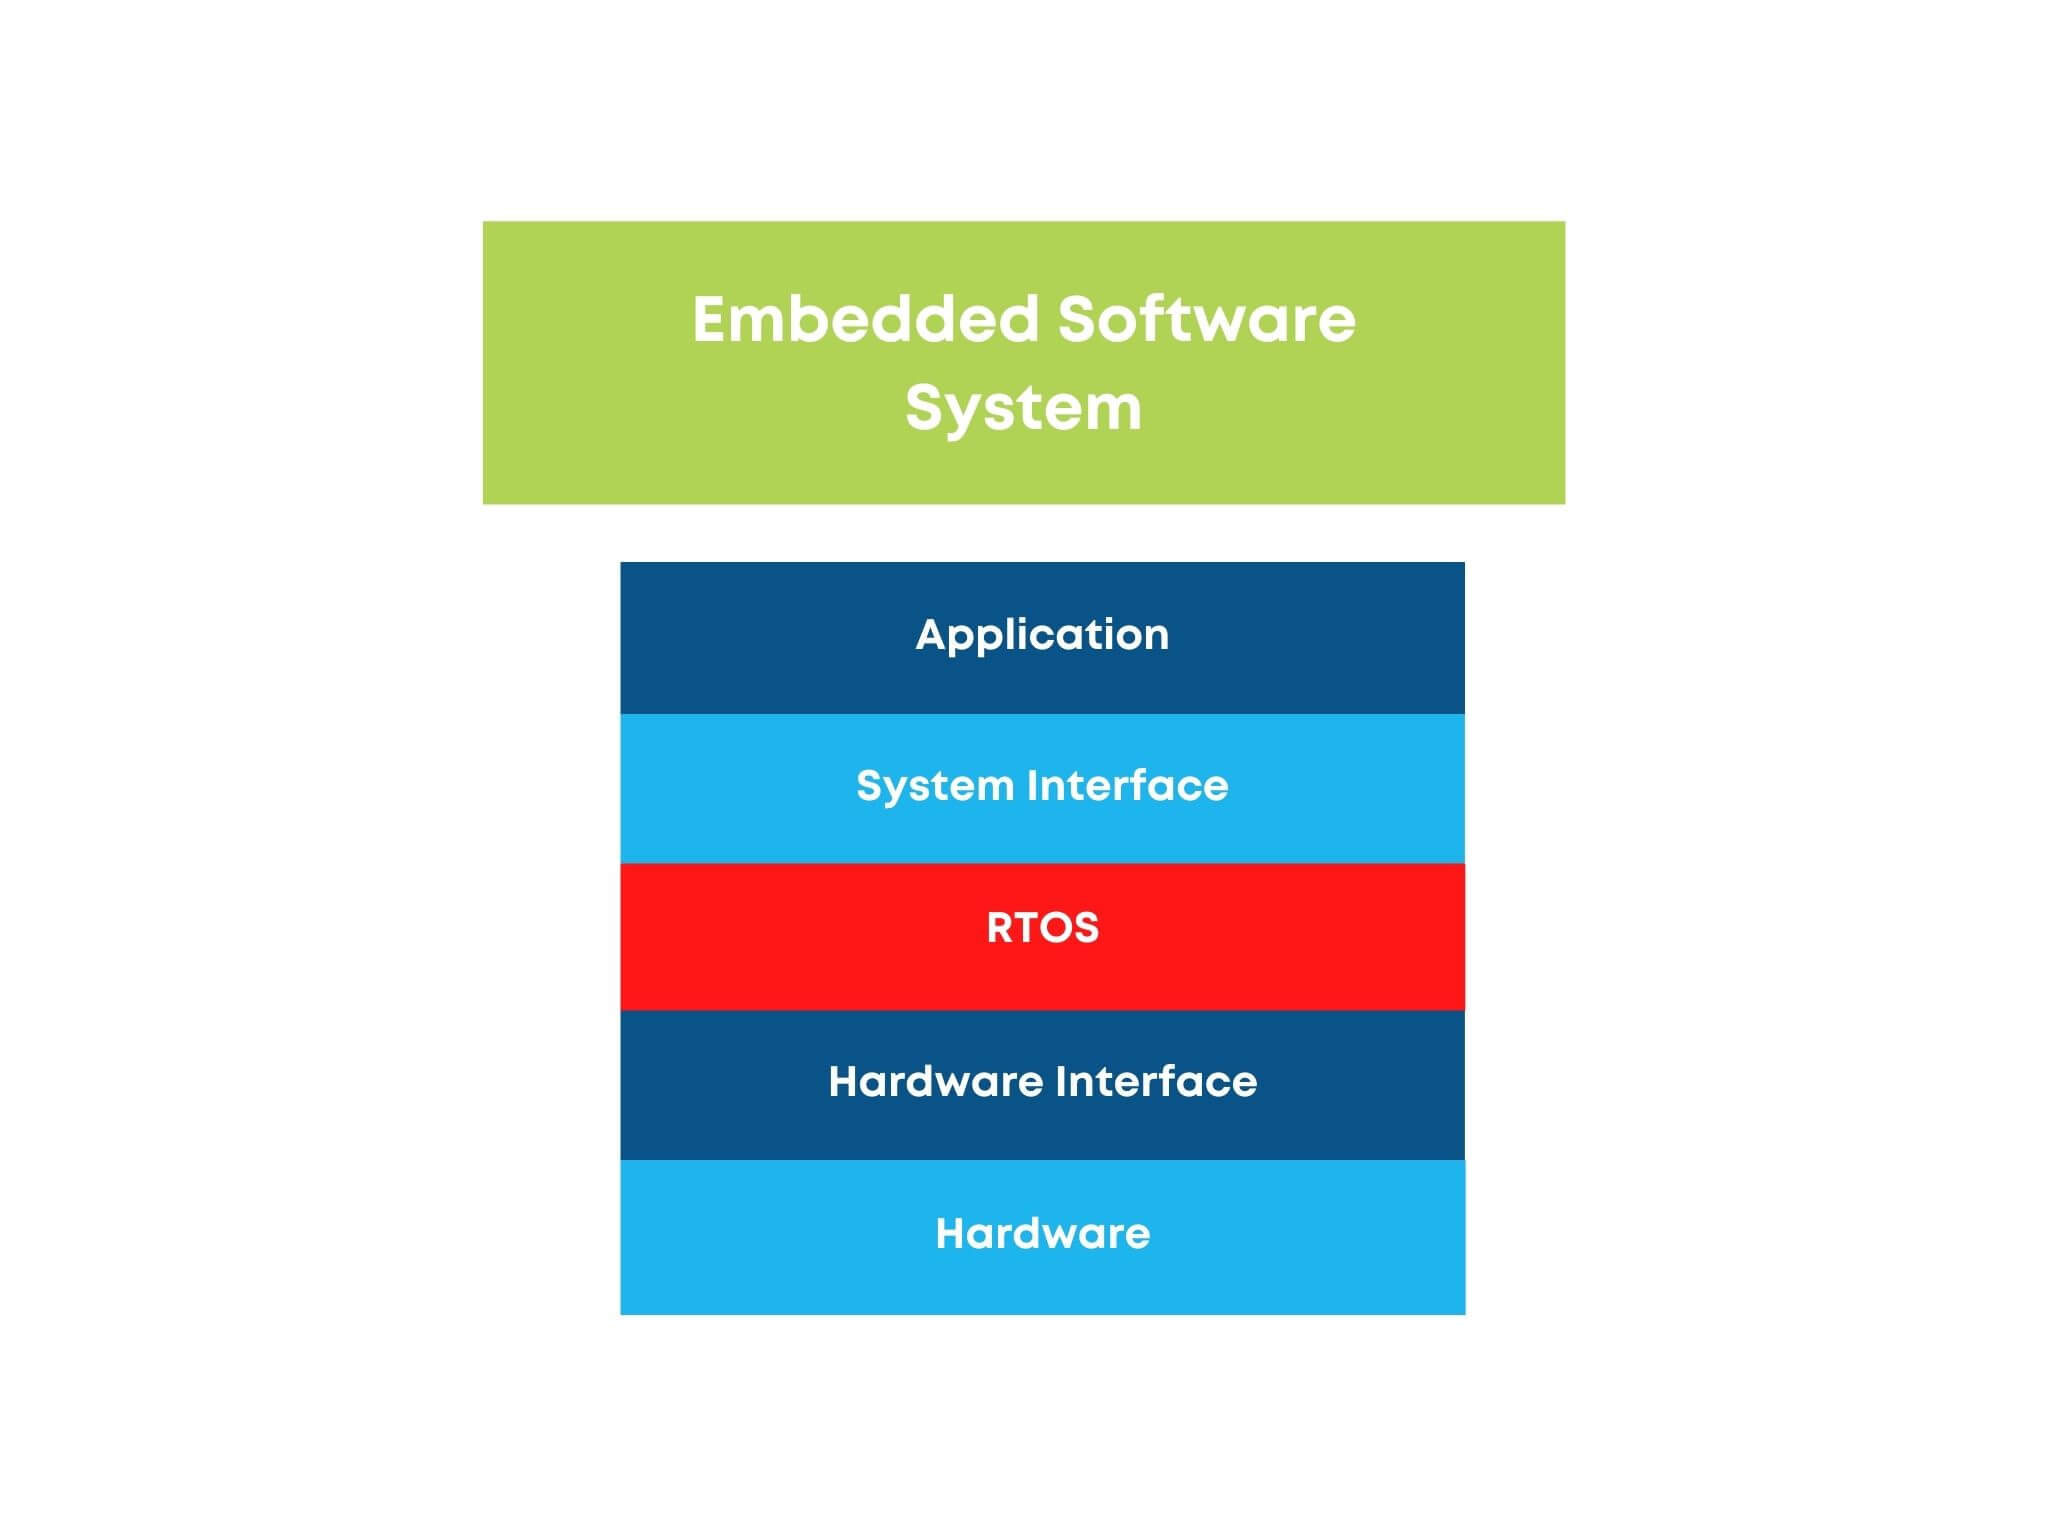 embedded software system graphic